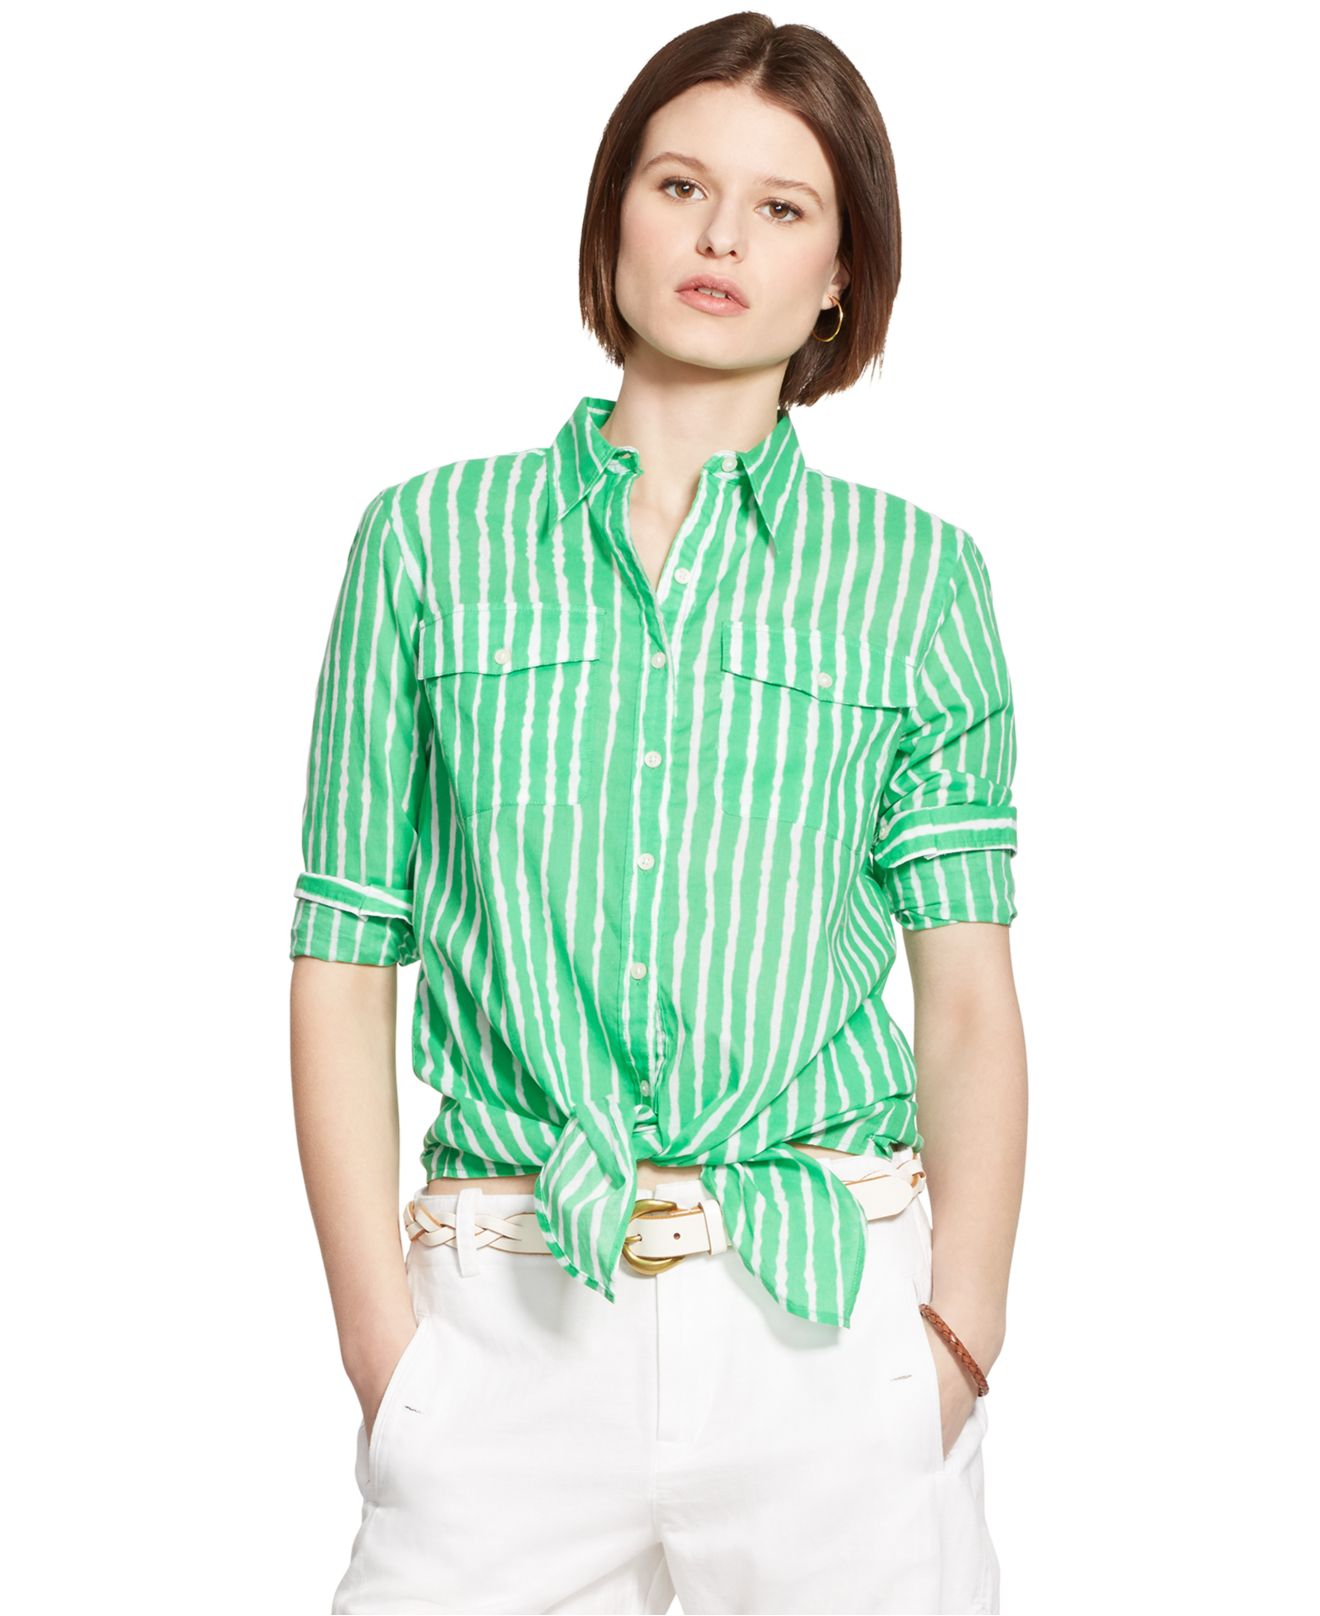 lyst lauren by ralph lauren striped tie front shirt in green. Black Bedroom Furniture Sets. Home Design Ideas